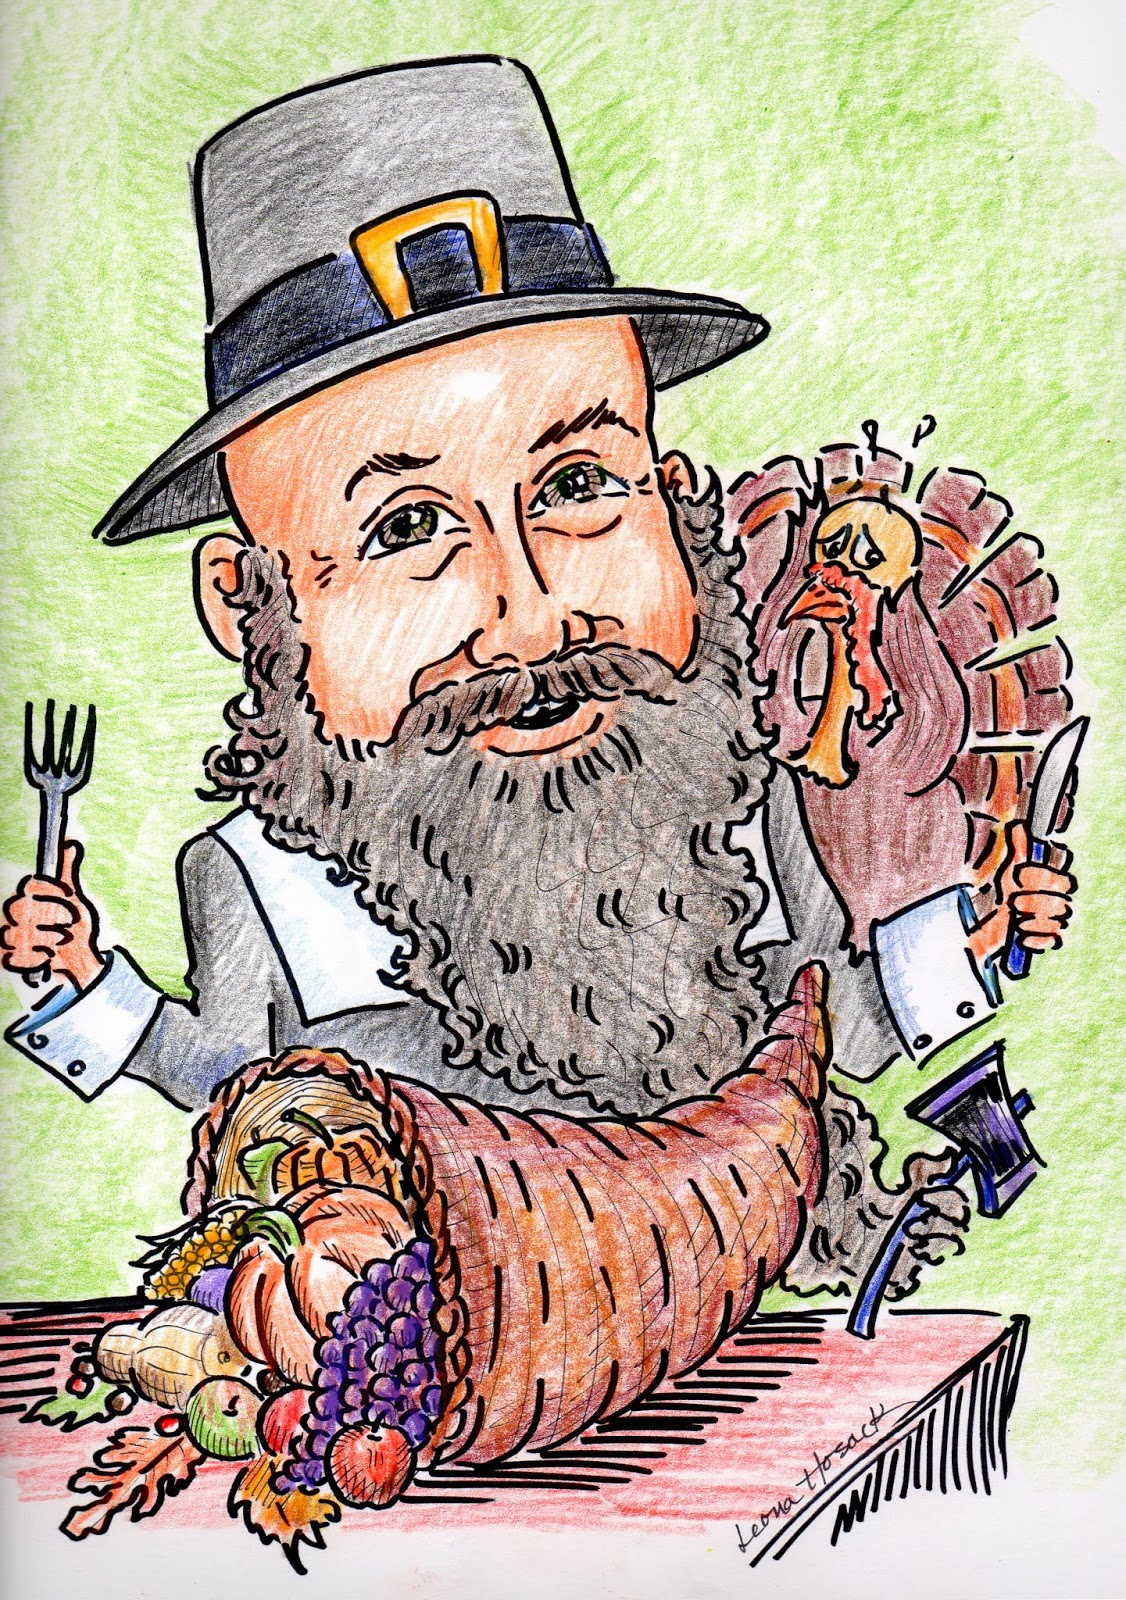 Thanksgiving, Cornucopia, turkey, dinner, pilgrim, caricature